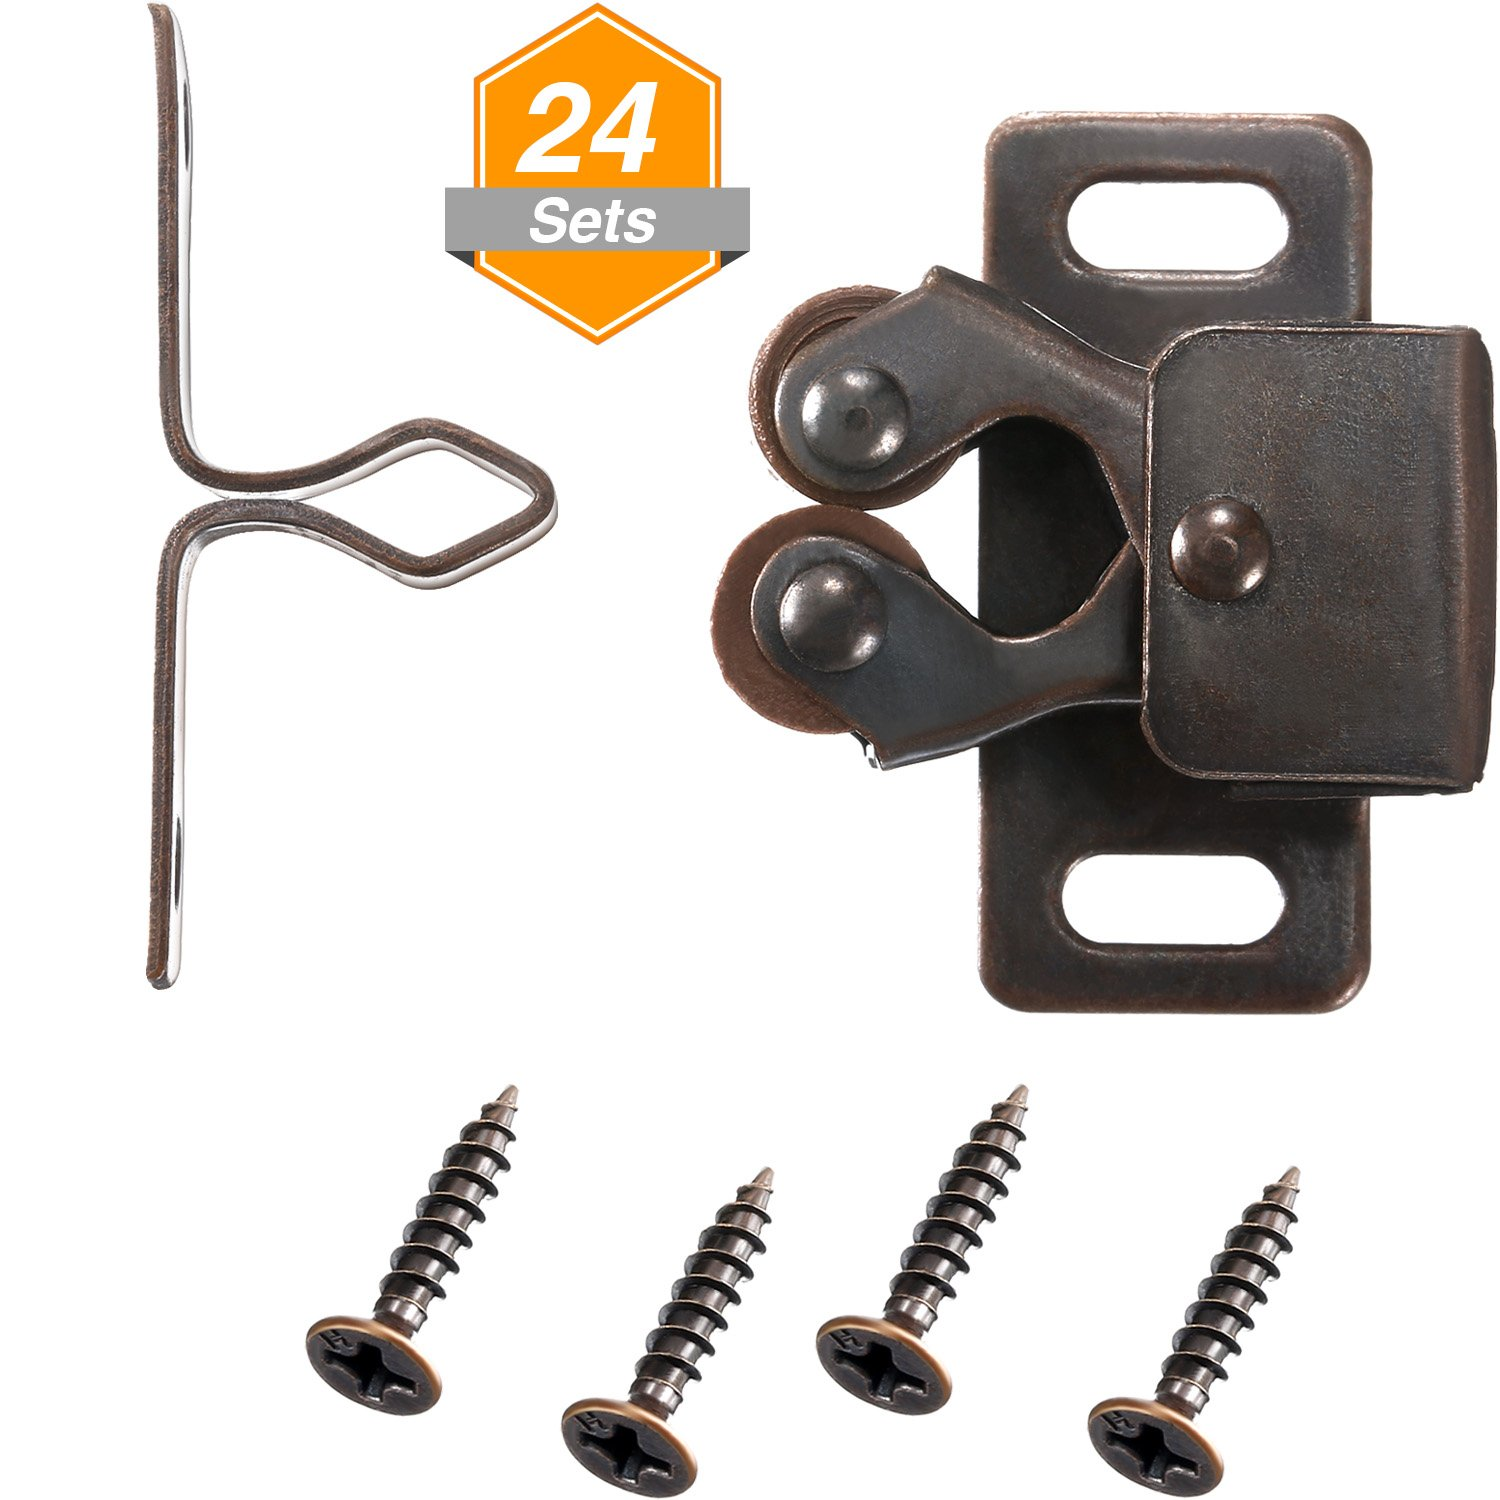 Gejoy 24 Pack Double Roller Catch for Closet Door and Cabinet Hardware Catch in Oil-Rubbed Bronze by Gejoy